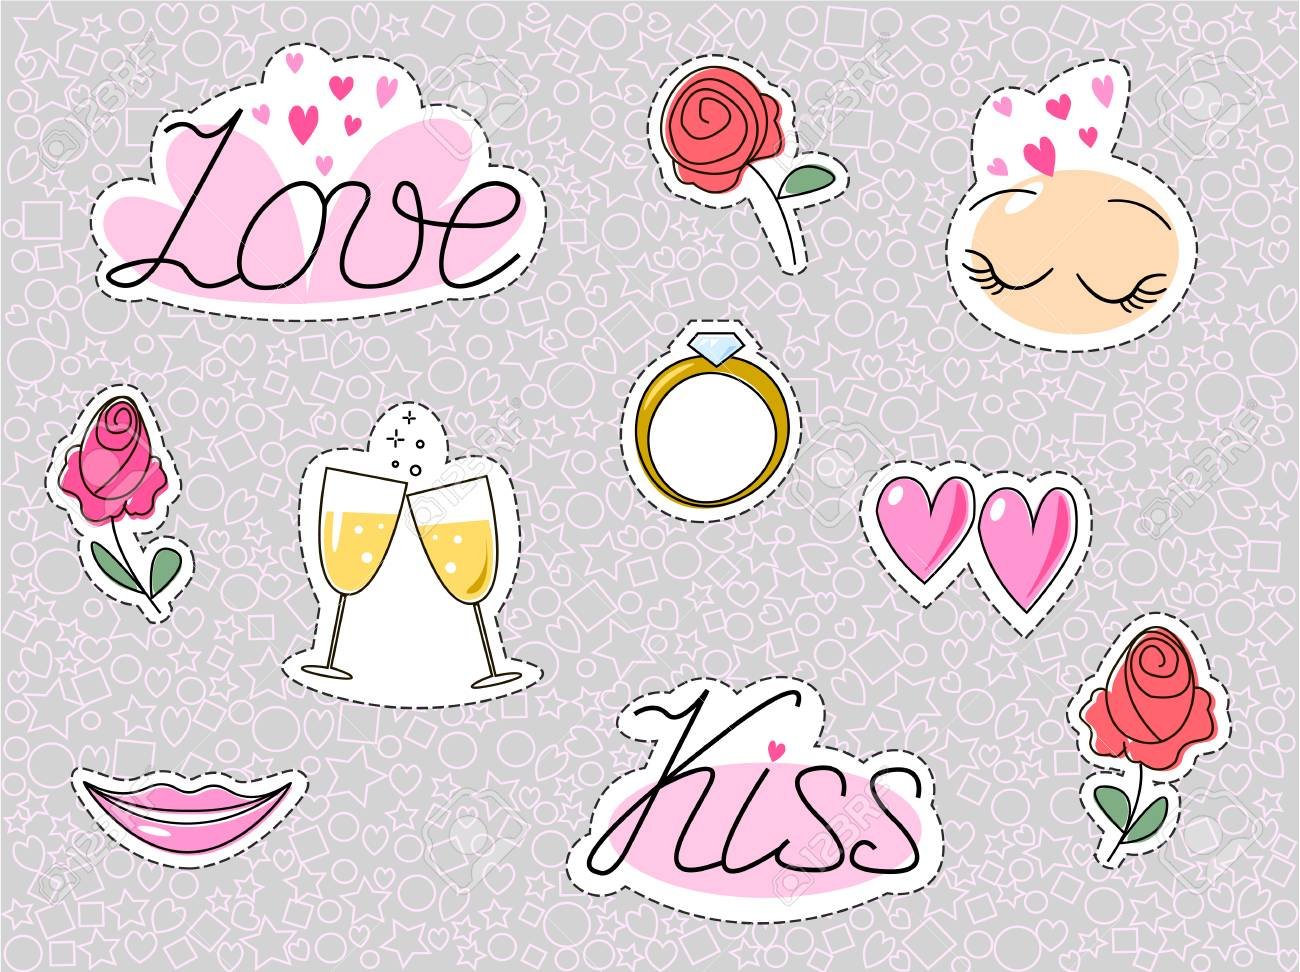 Dating stickers 16 jaar oude dating 18